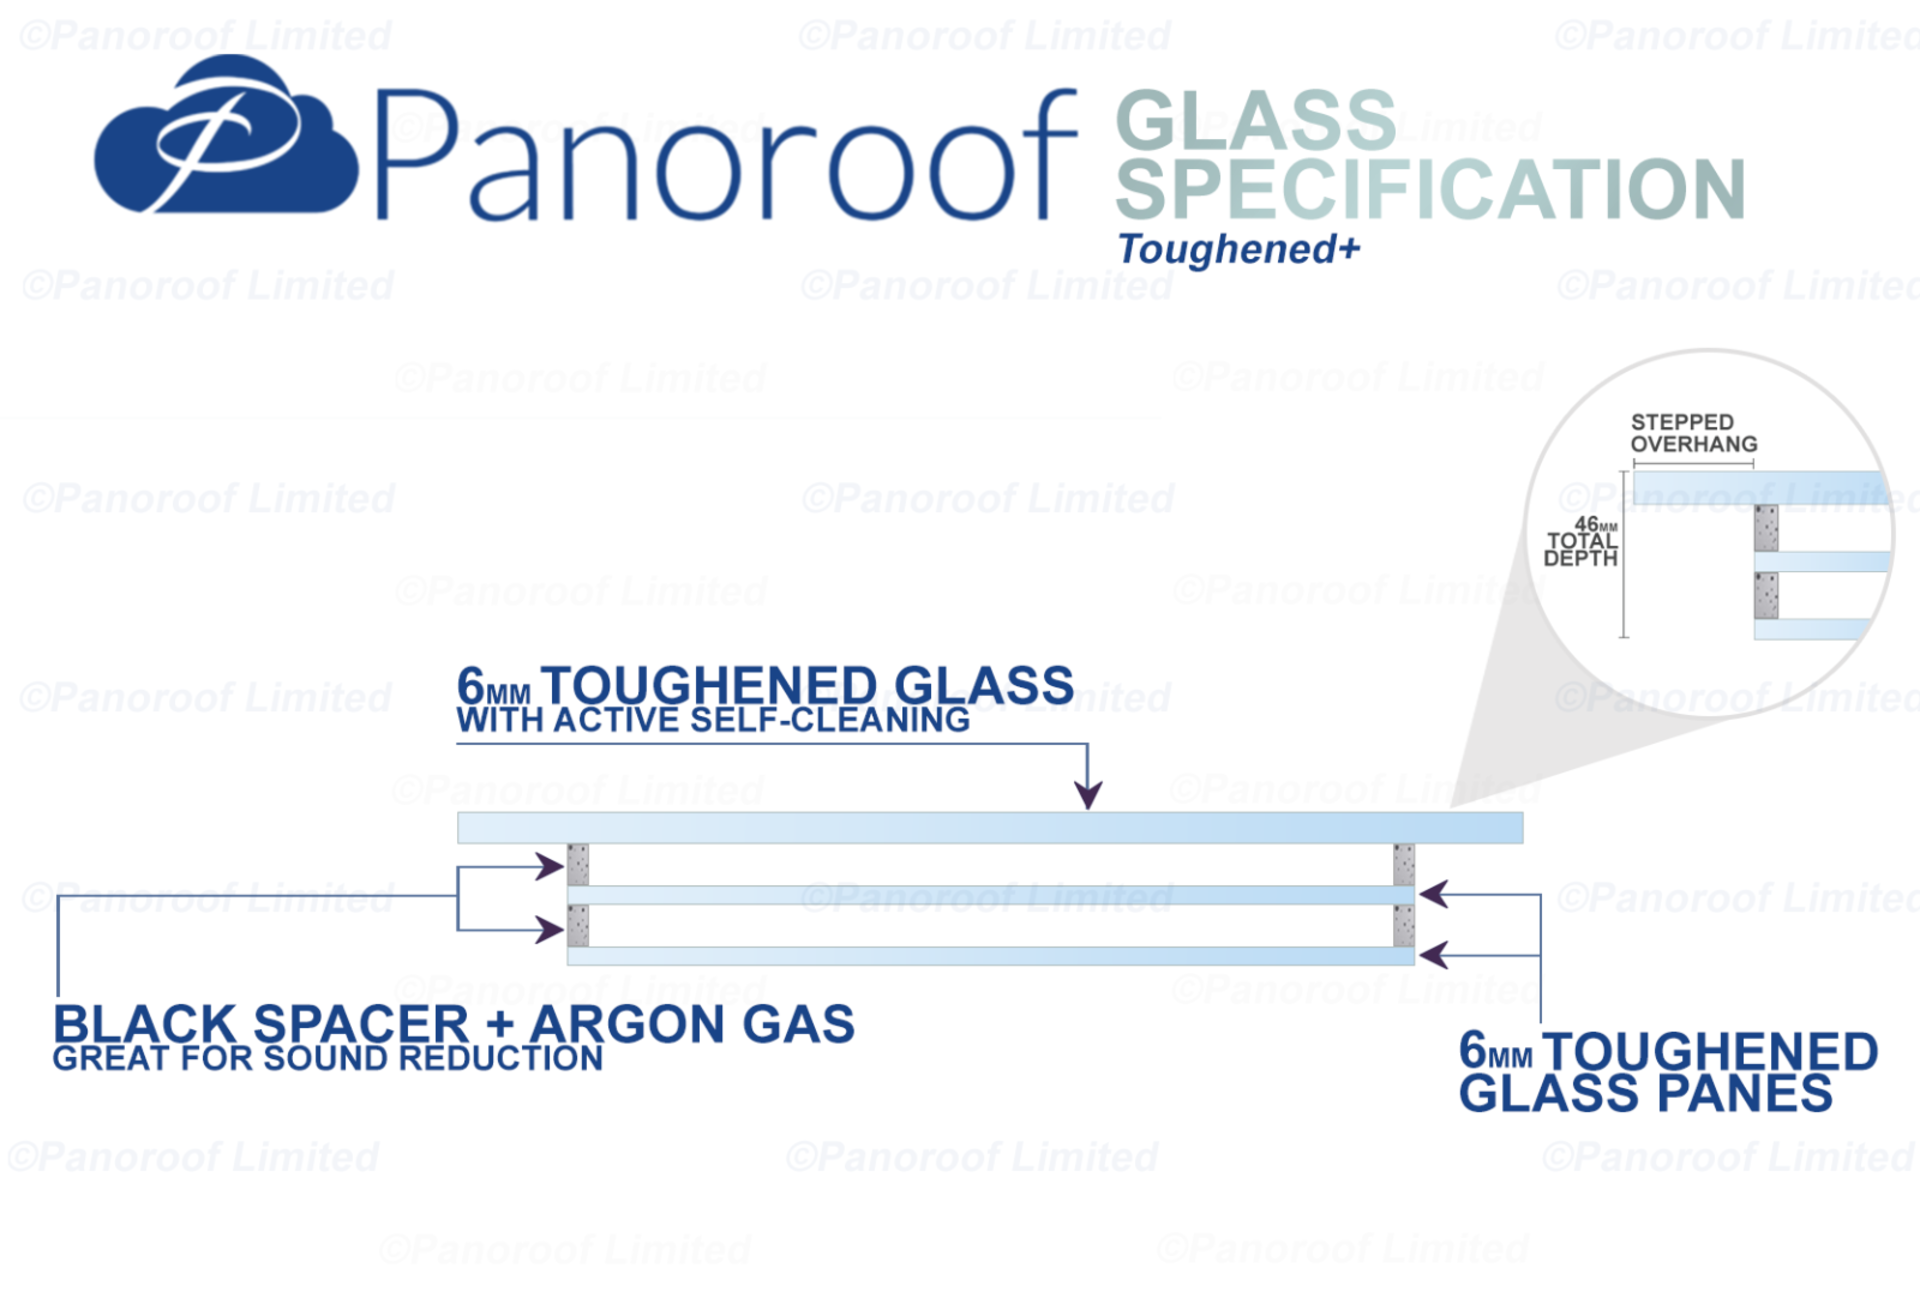 Panoroof 1500x1500mm (inside Size Visable glass area) Seamless Glass Skylight Flat Roof Rooflight - Image 5 of 6